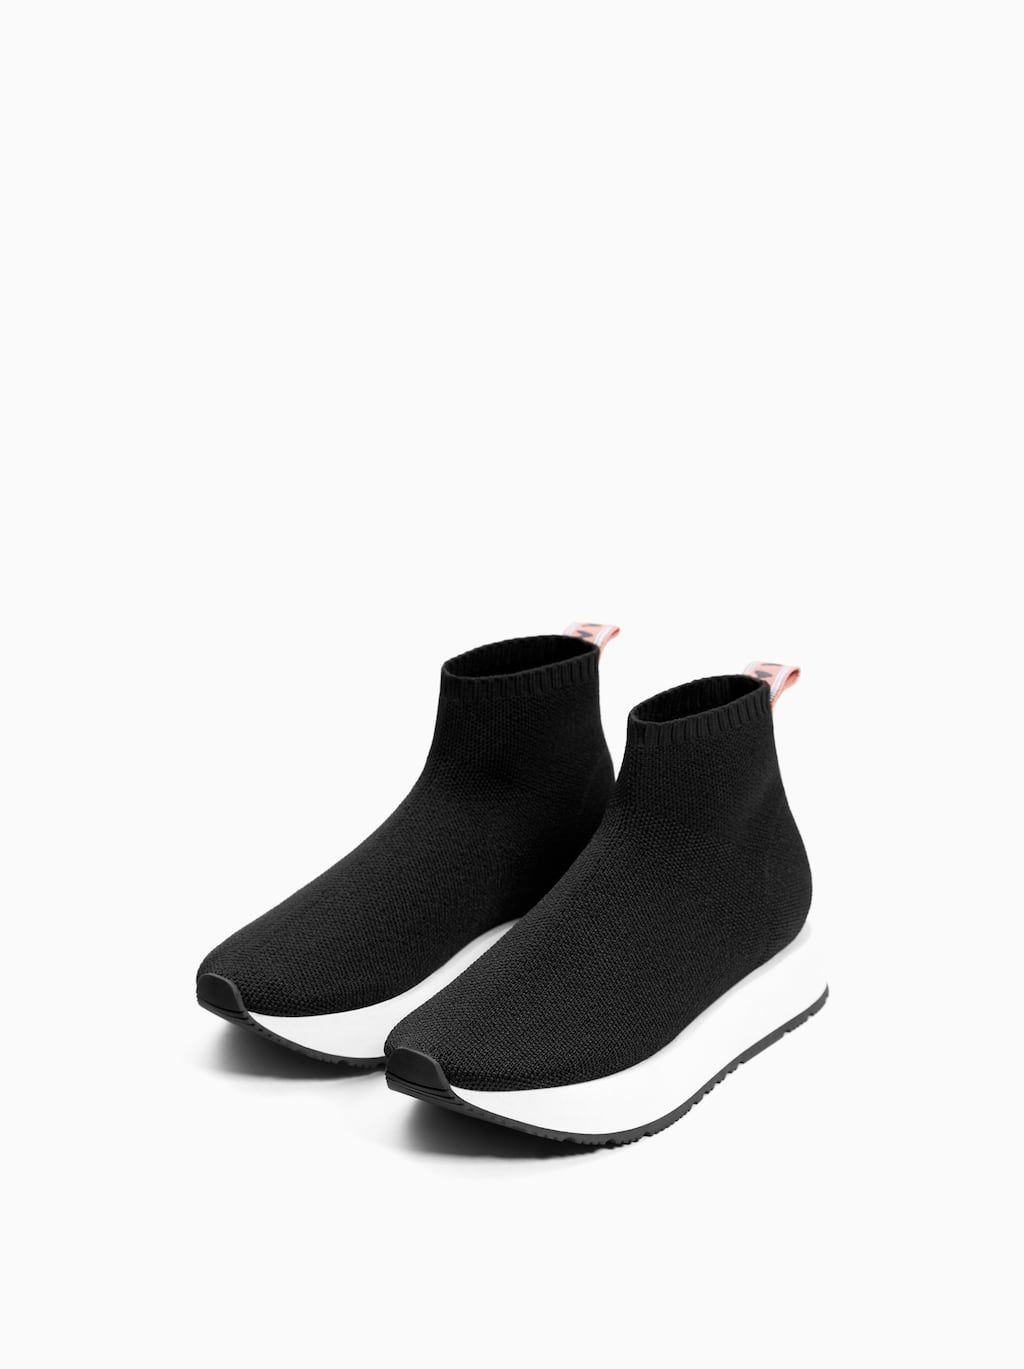 SOCK-STYLE HIGH TOP SNEAKERS from Zara